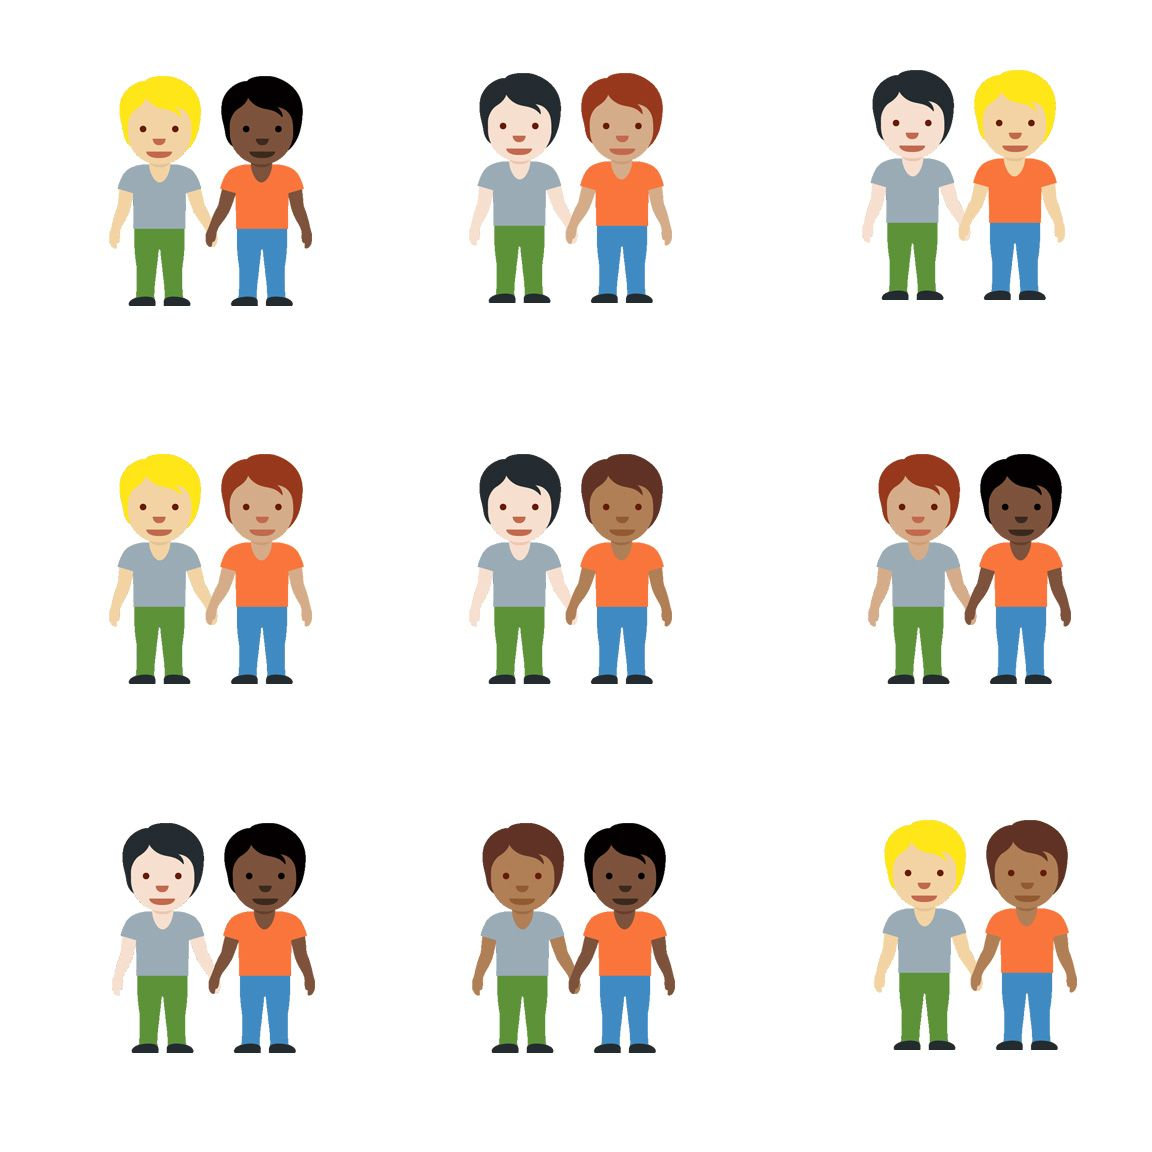 Emojipedia-Twemoji-12.3-People-Holding-Hands